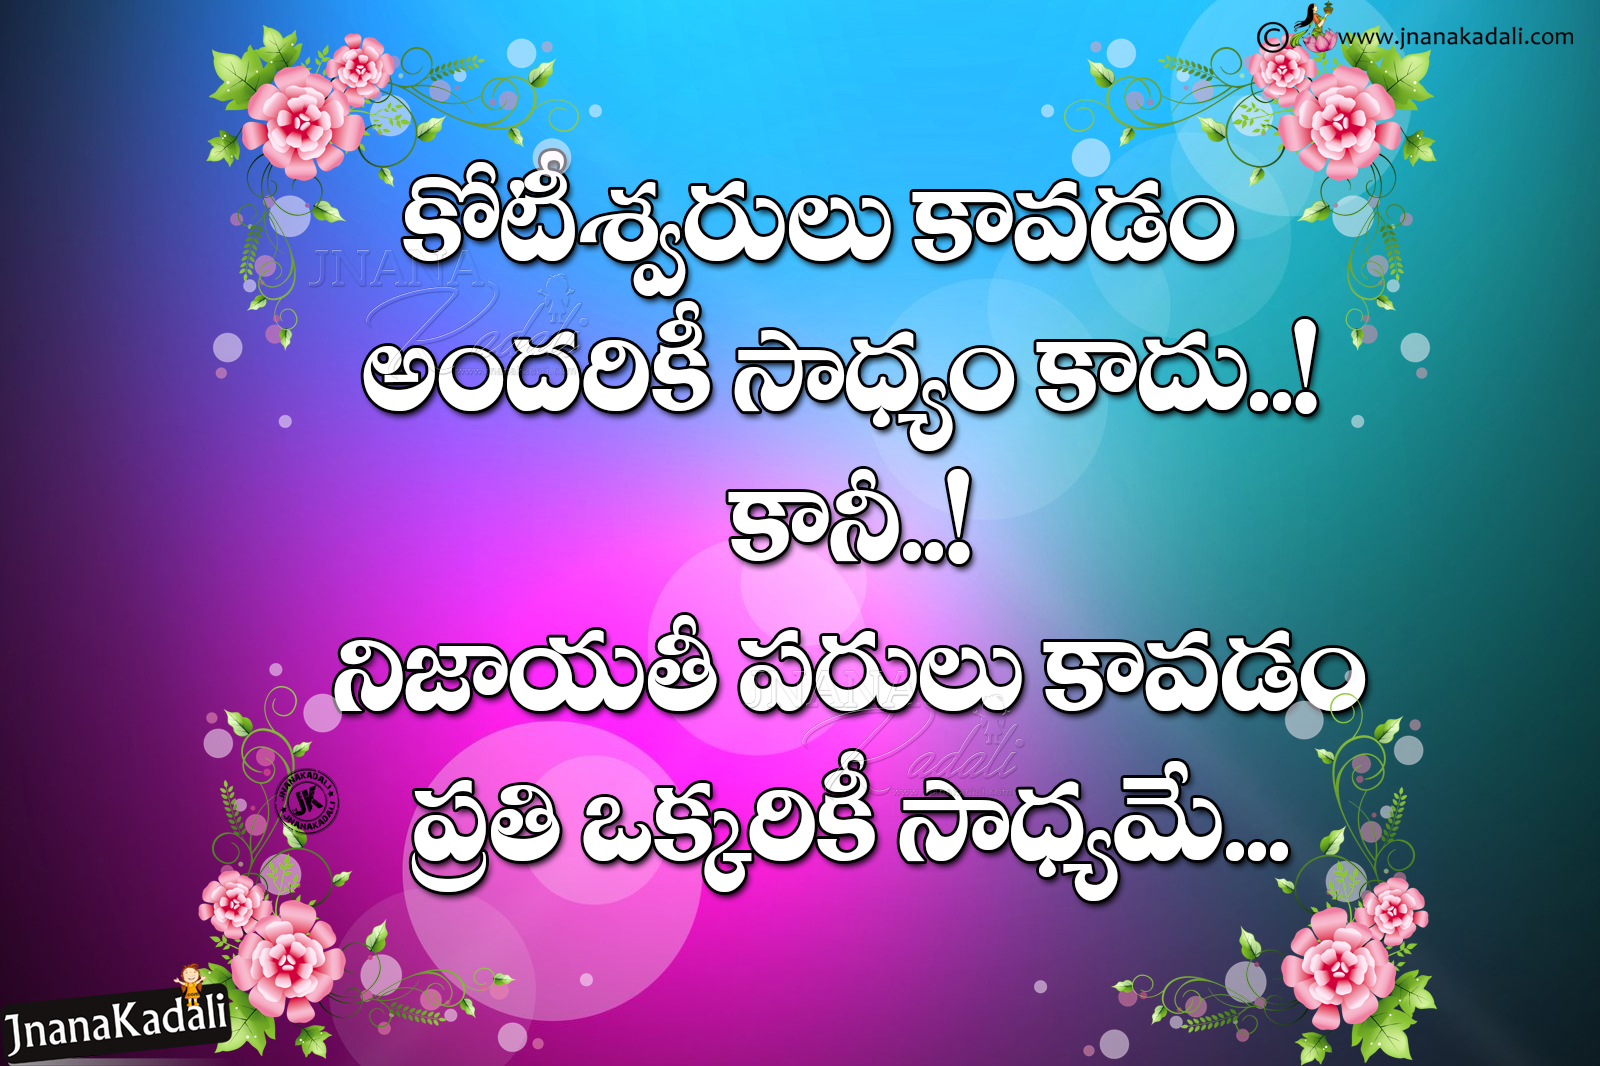 Self Respect Quotes Be Gentle Best Inspirational Quotes About Self Respect In Telugu